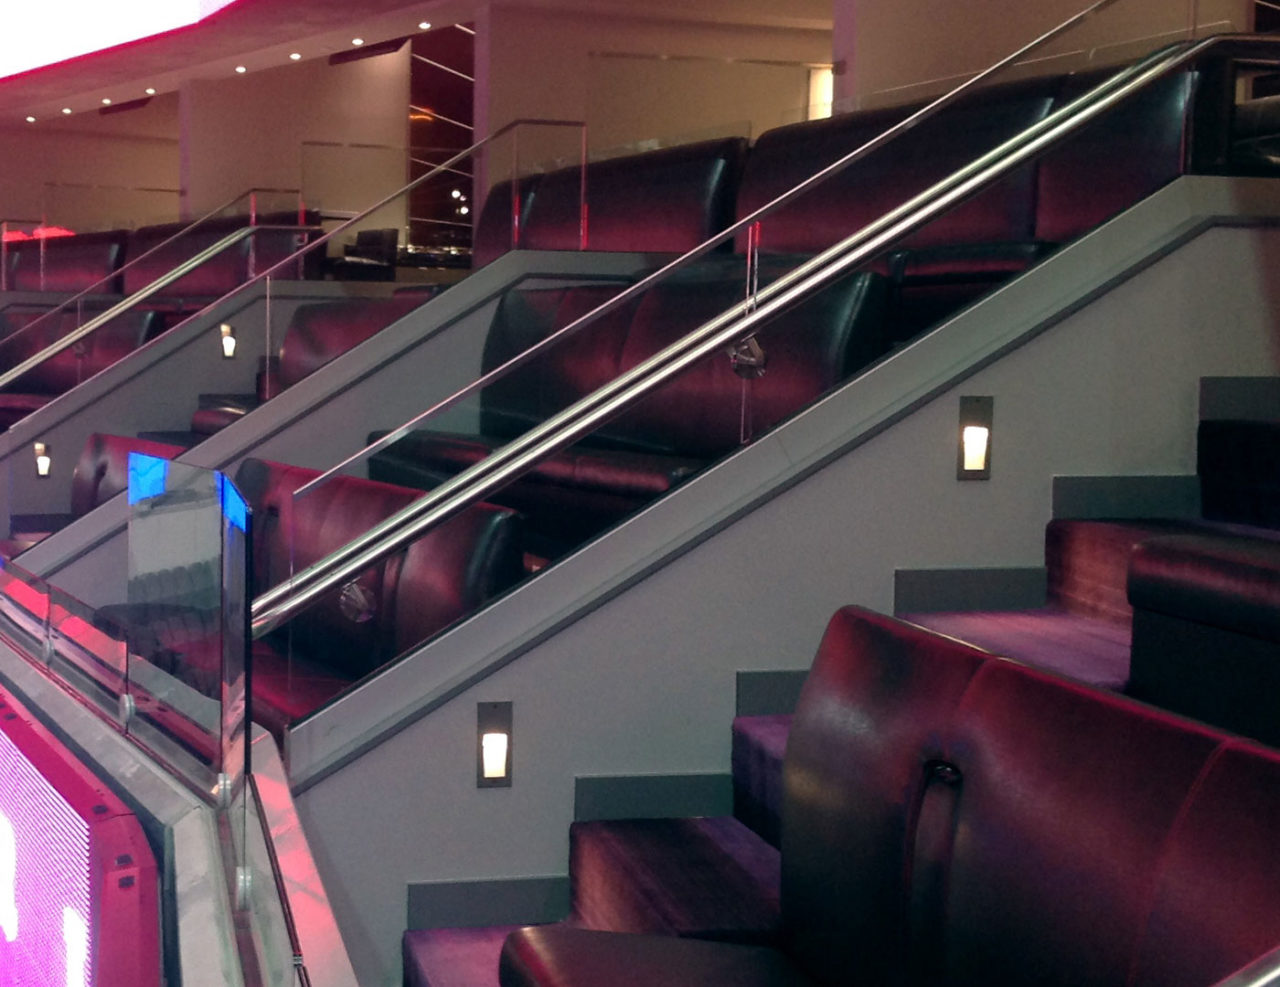 Glass railing at front of suites for clean sightlines